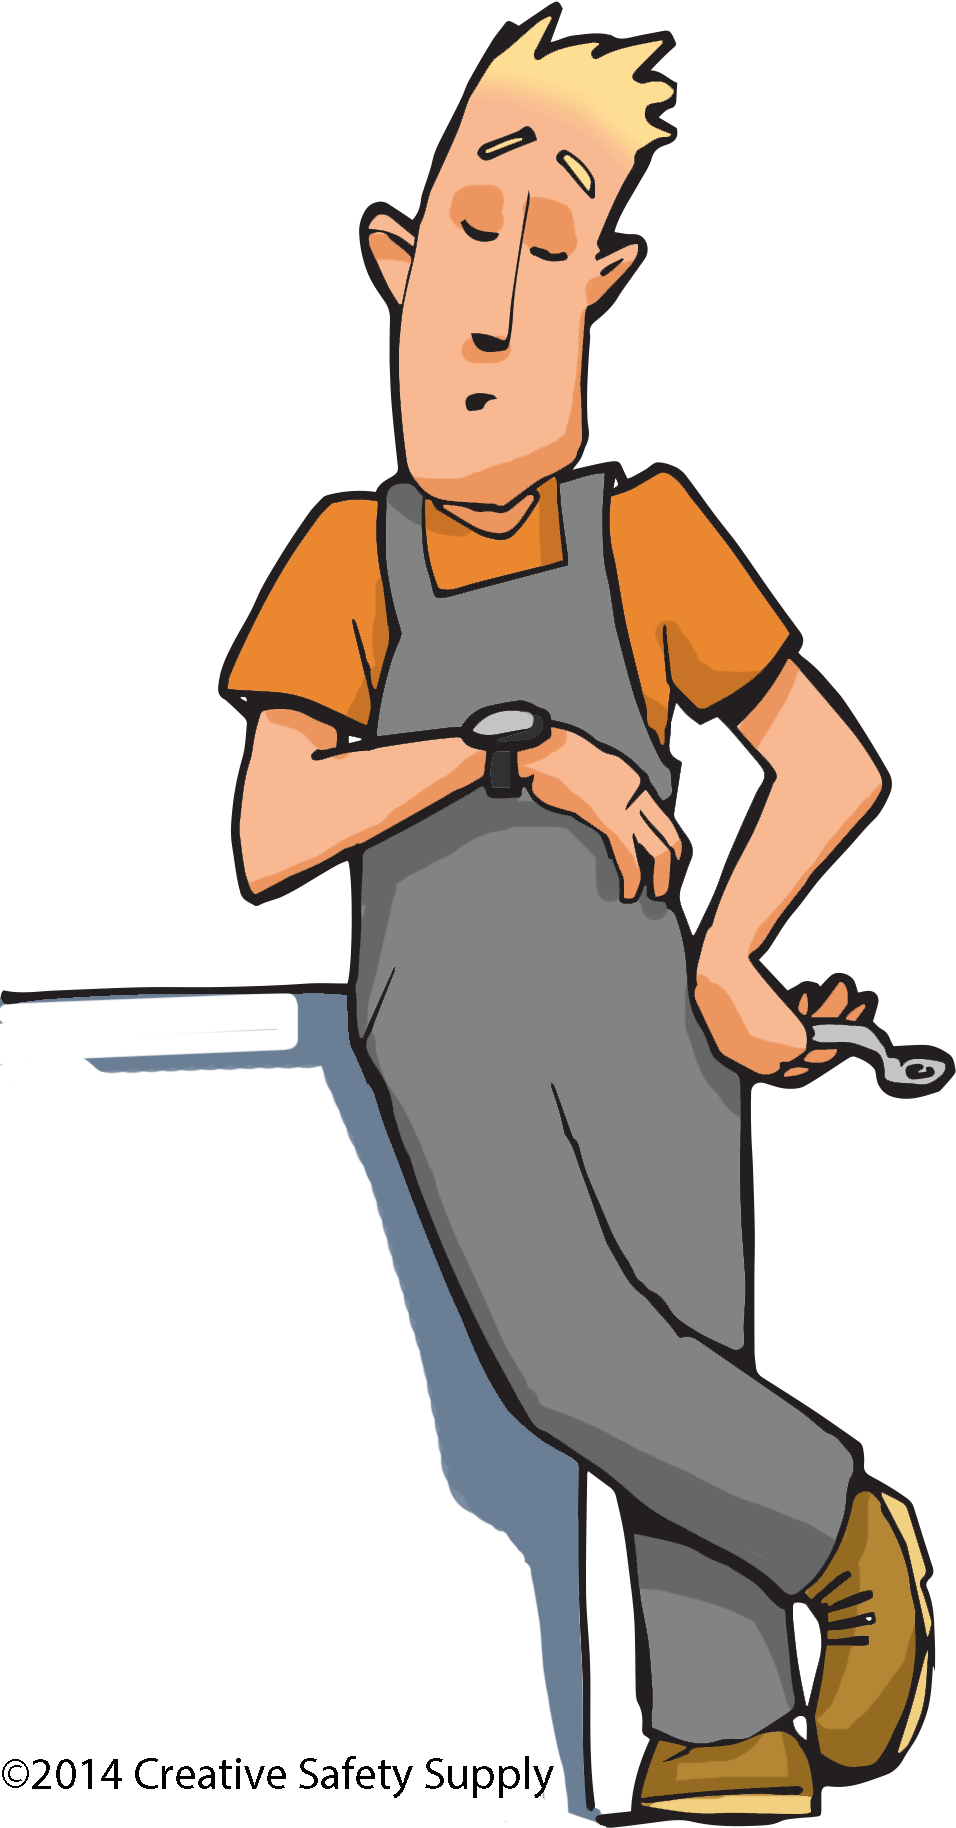 Lean service could learn. Frustrated clipart frustrated customer